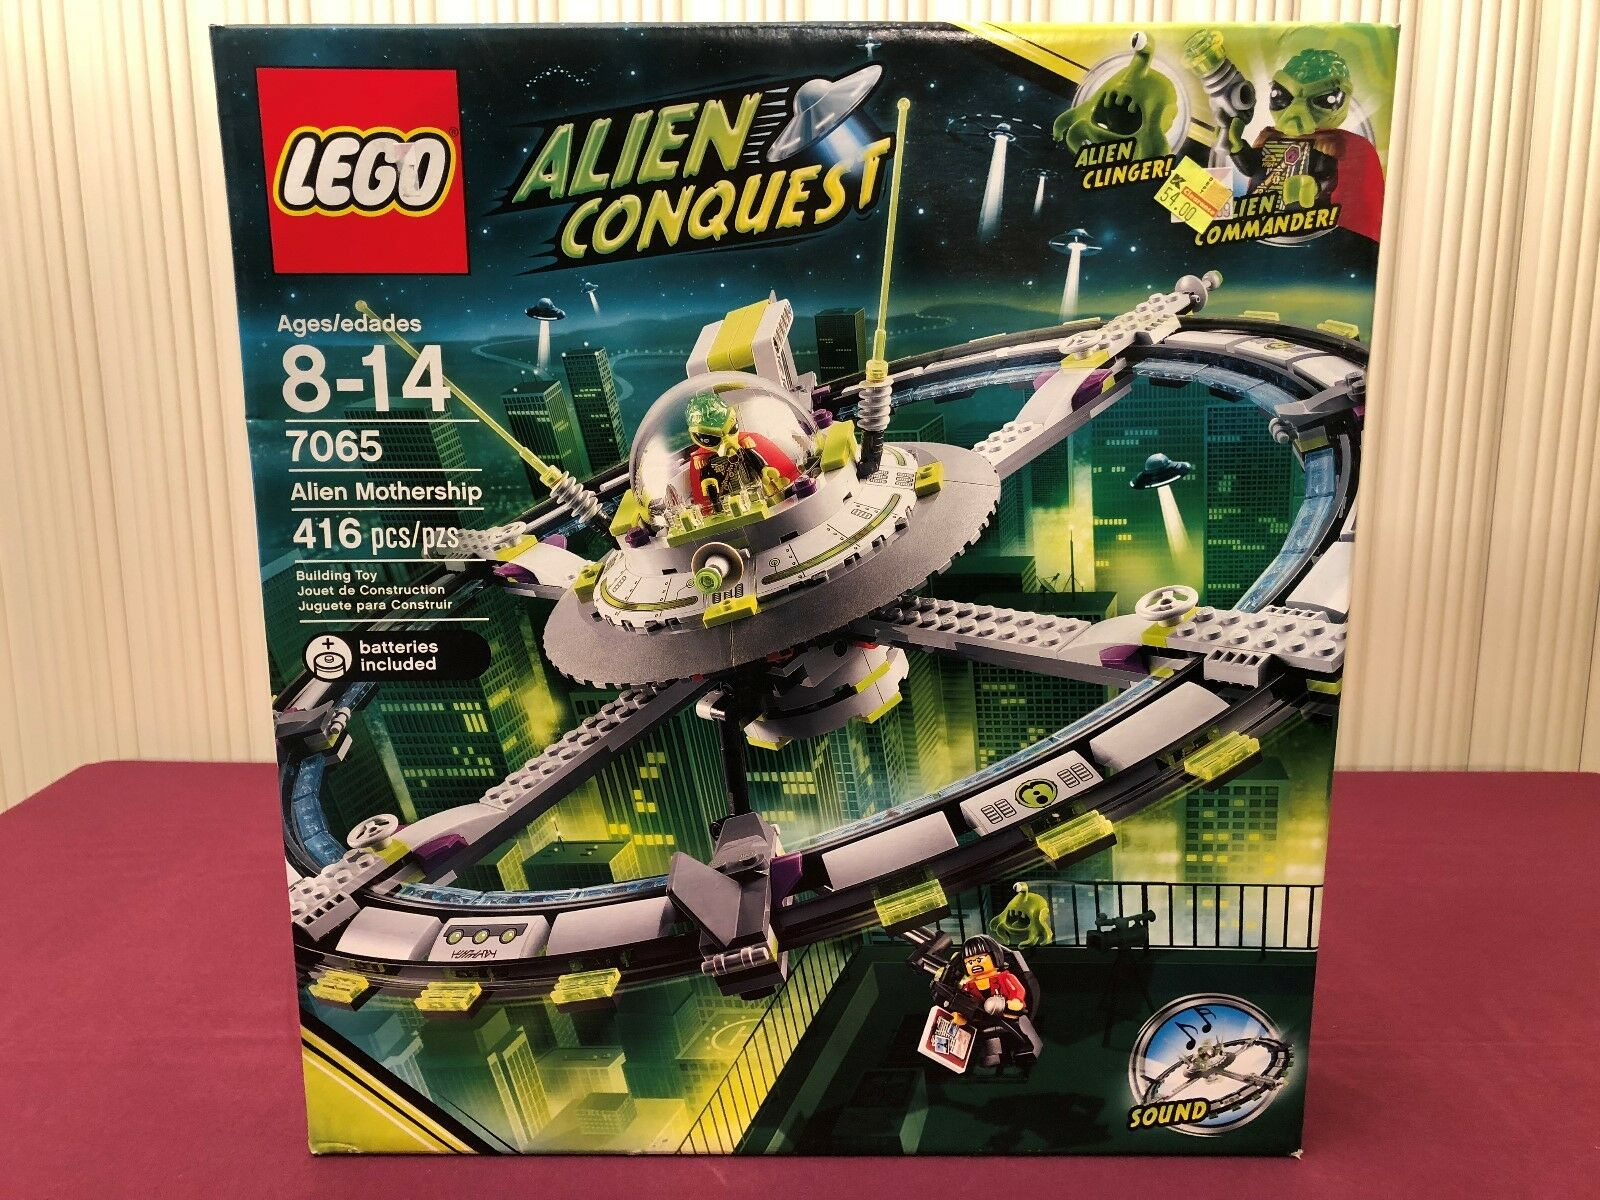 LEGO 7065 Alien Conquest- Space Alien Mothership with sound - Brand Nuovo in Box